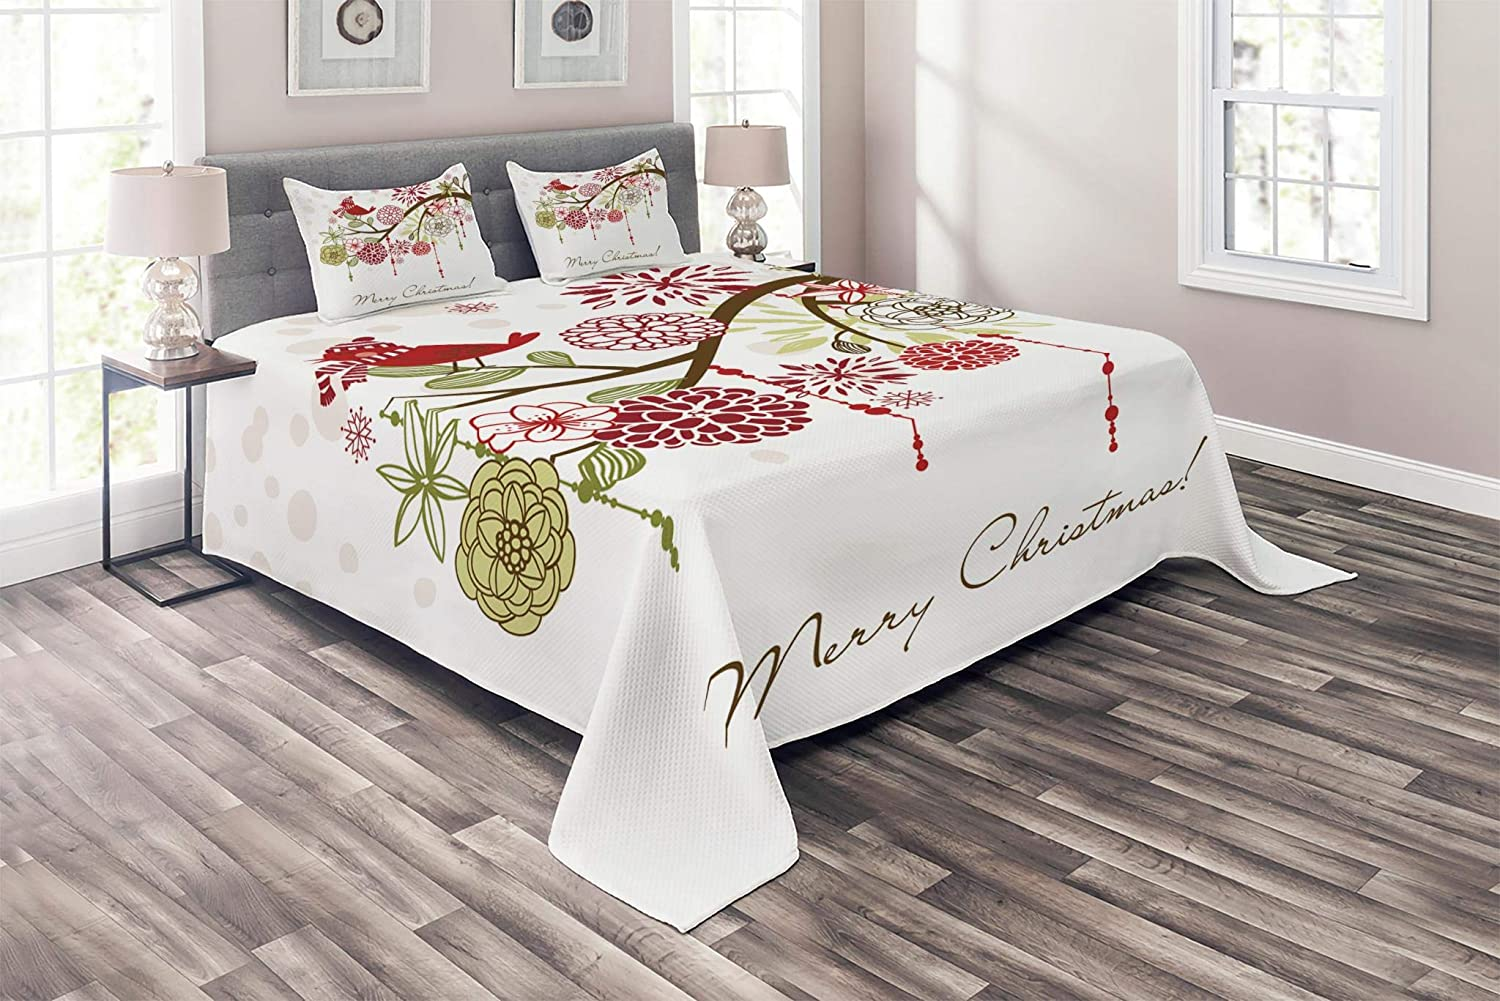 Ambesonne Christmas Coverlet, Floral Winter Red Bird Hat and Scarf on Blooming Tree Nature Inspired, 3 Piece Decorative Quilted Bedspread Set with 2 Pillow Shams, King Size, White Green